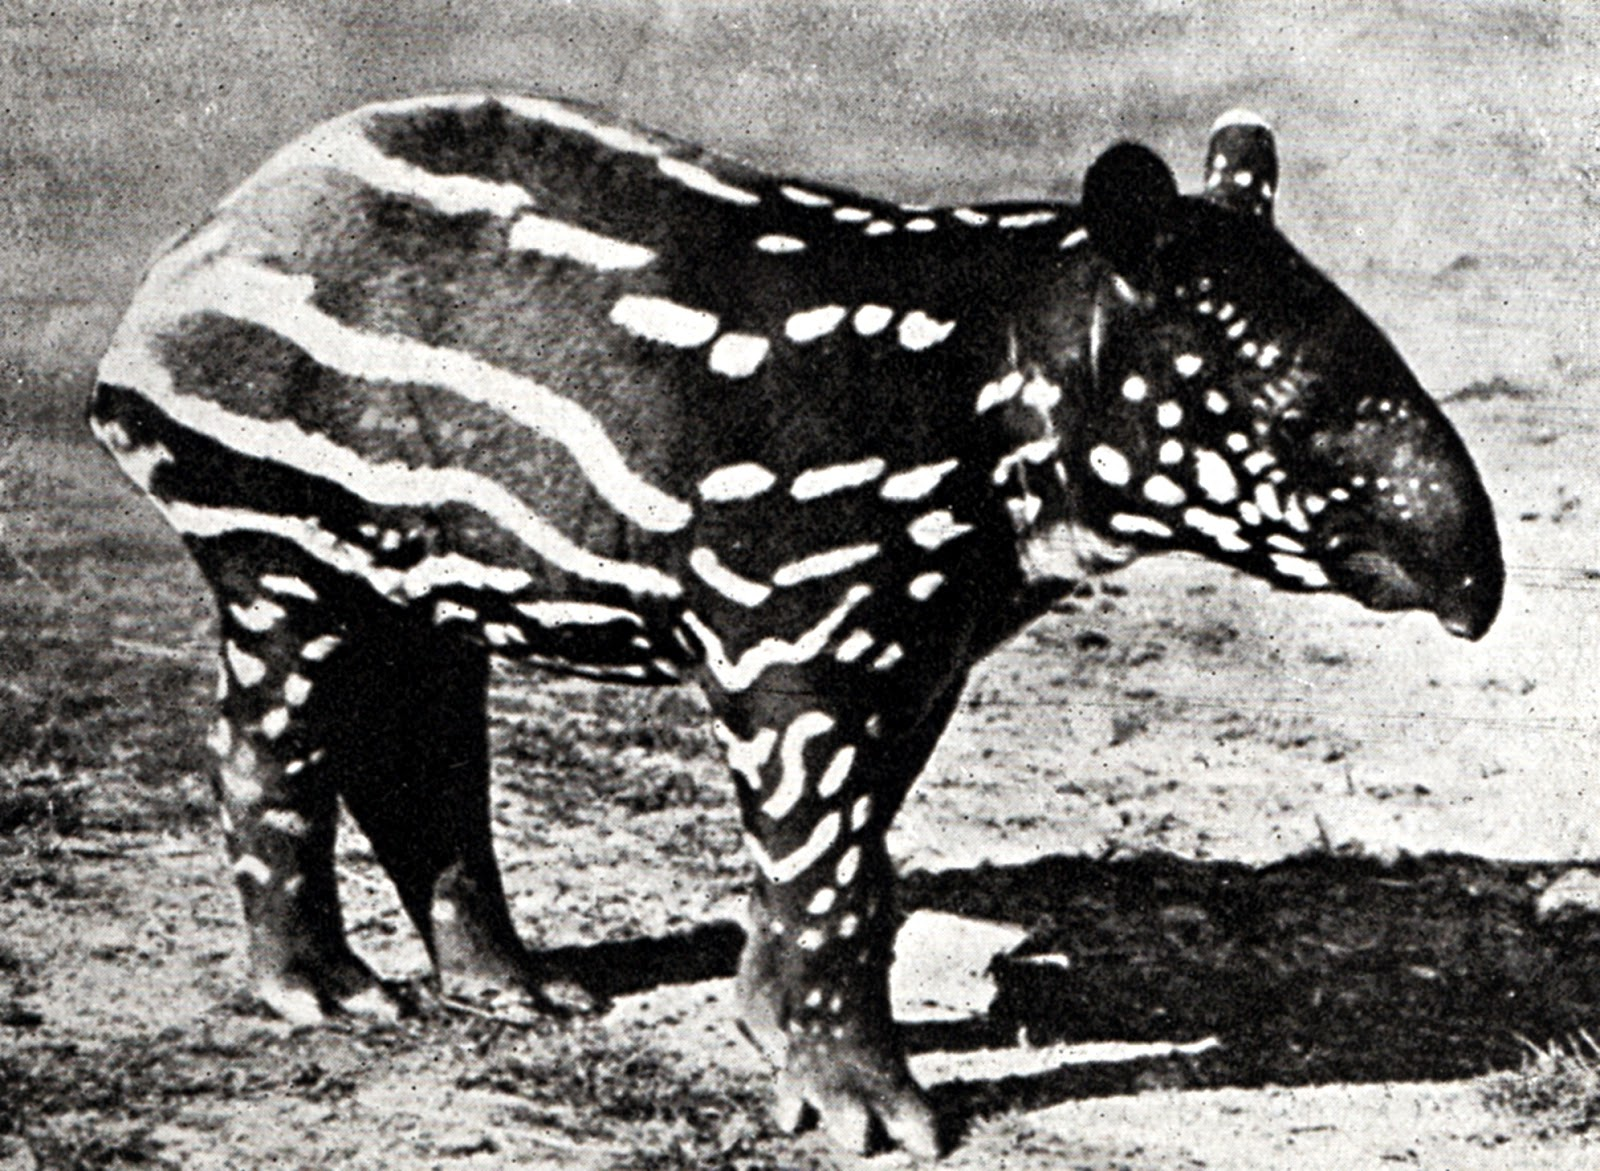 ShukerNature: TAPIRS AND TIGELBOATS – DOES THE MALAYAN TAPIR